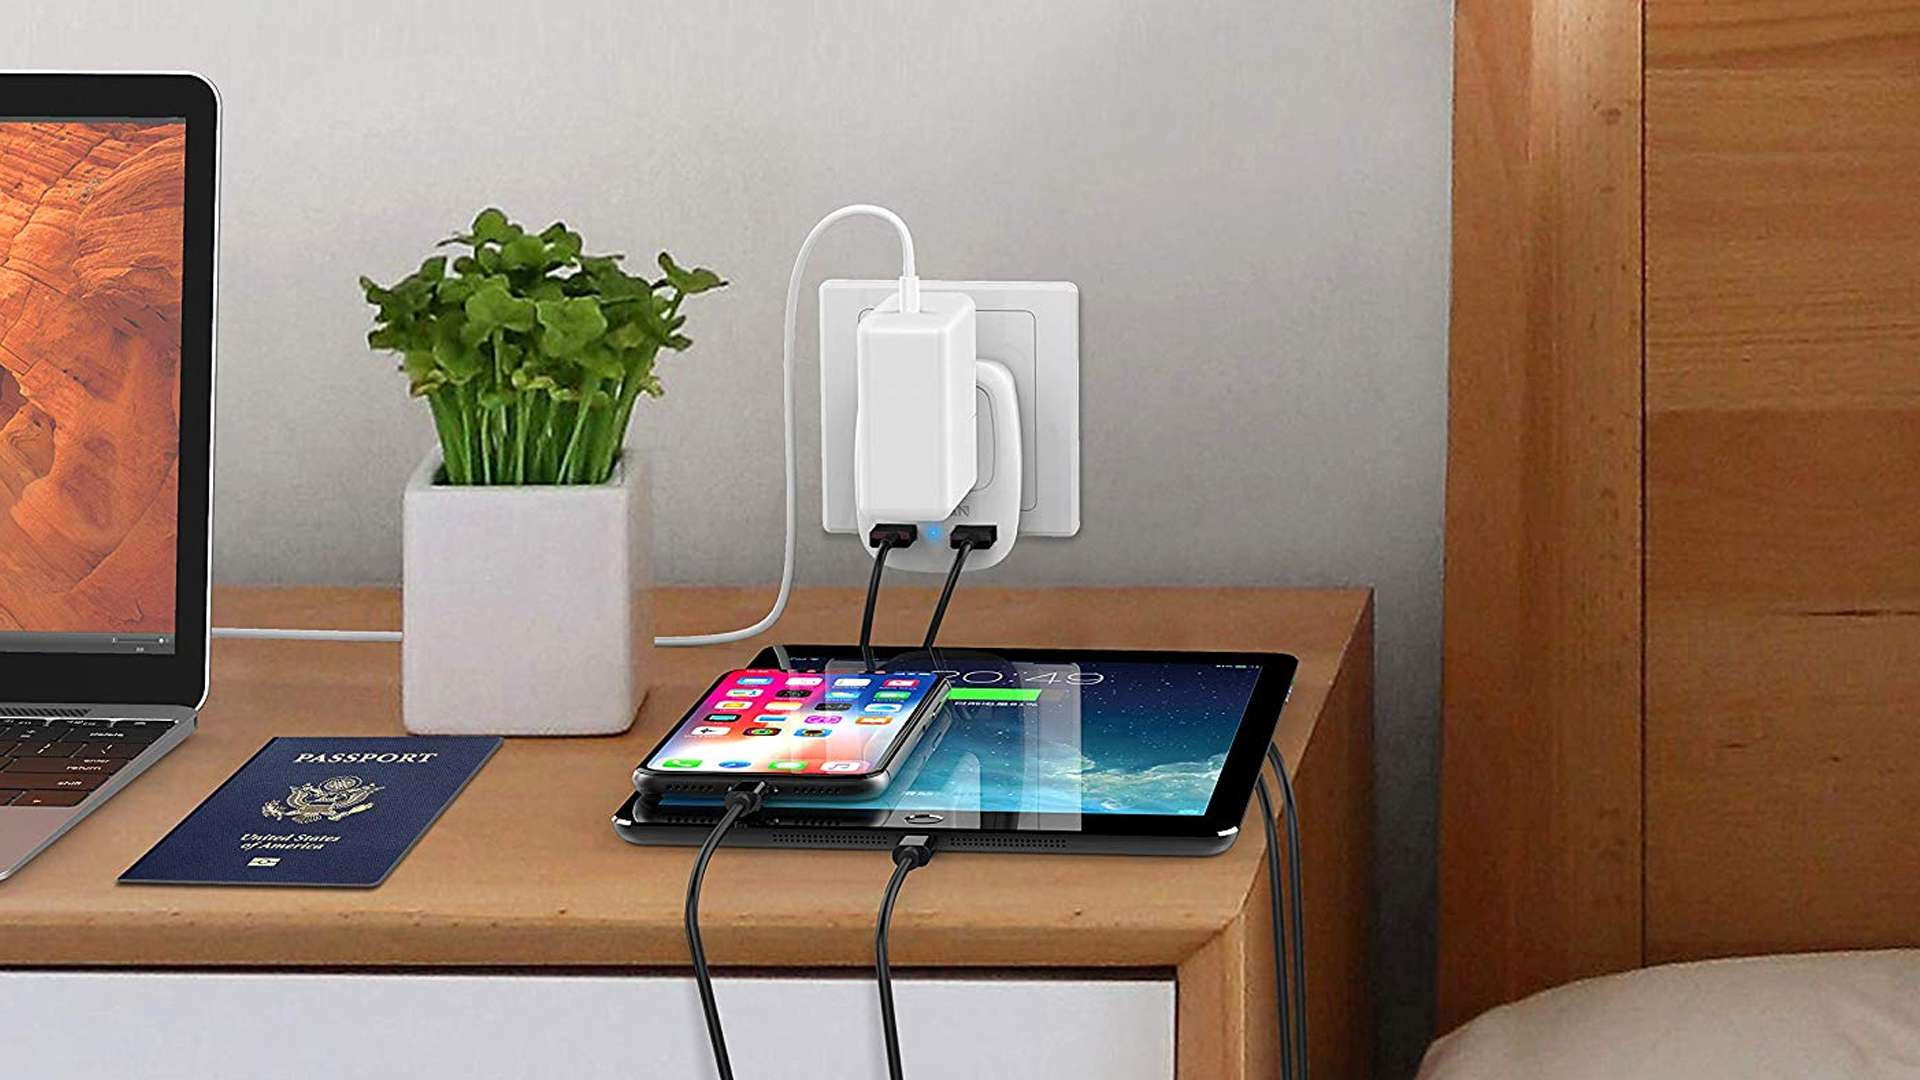 TESSAN Eurpoean and Hong Kong power adapter with USB and traditional outlet sockets charging a laptop, iPhone, and iPad..